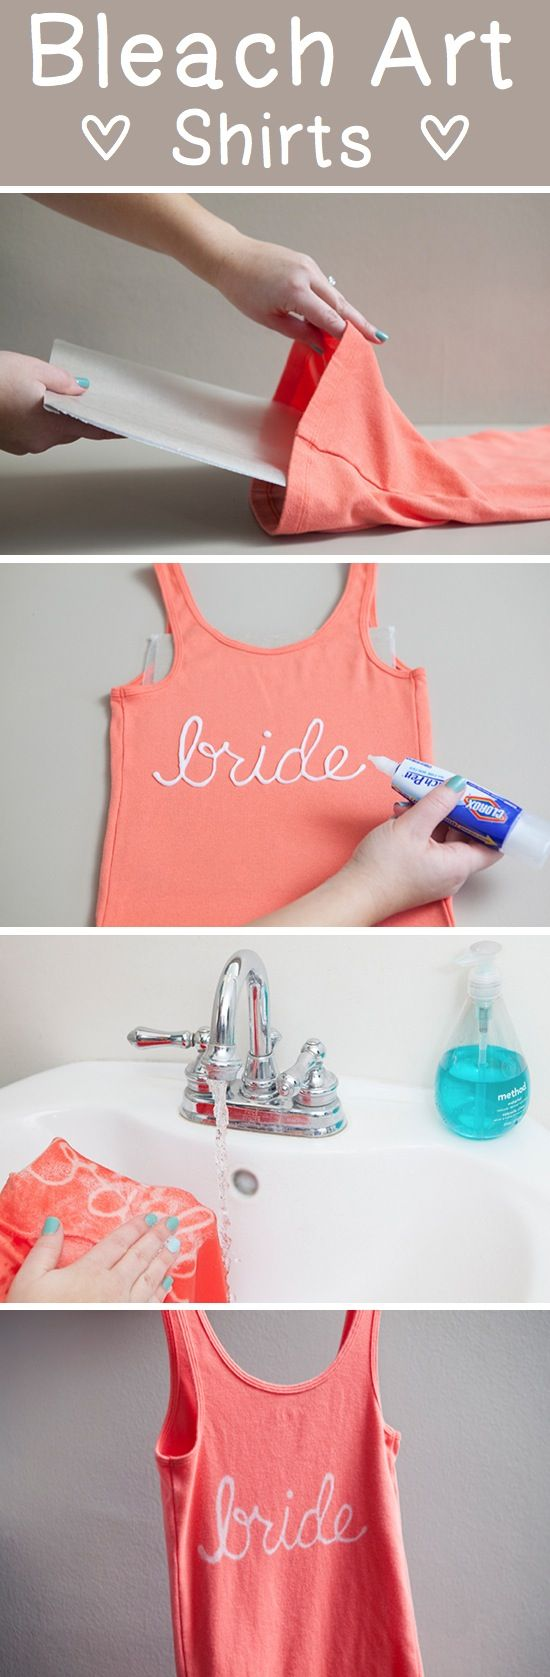 Use a Clorox Bleach Pen to make your own shirt designs!: